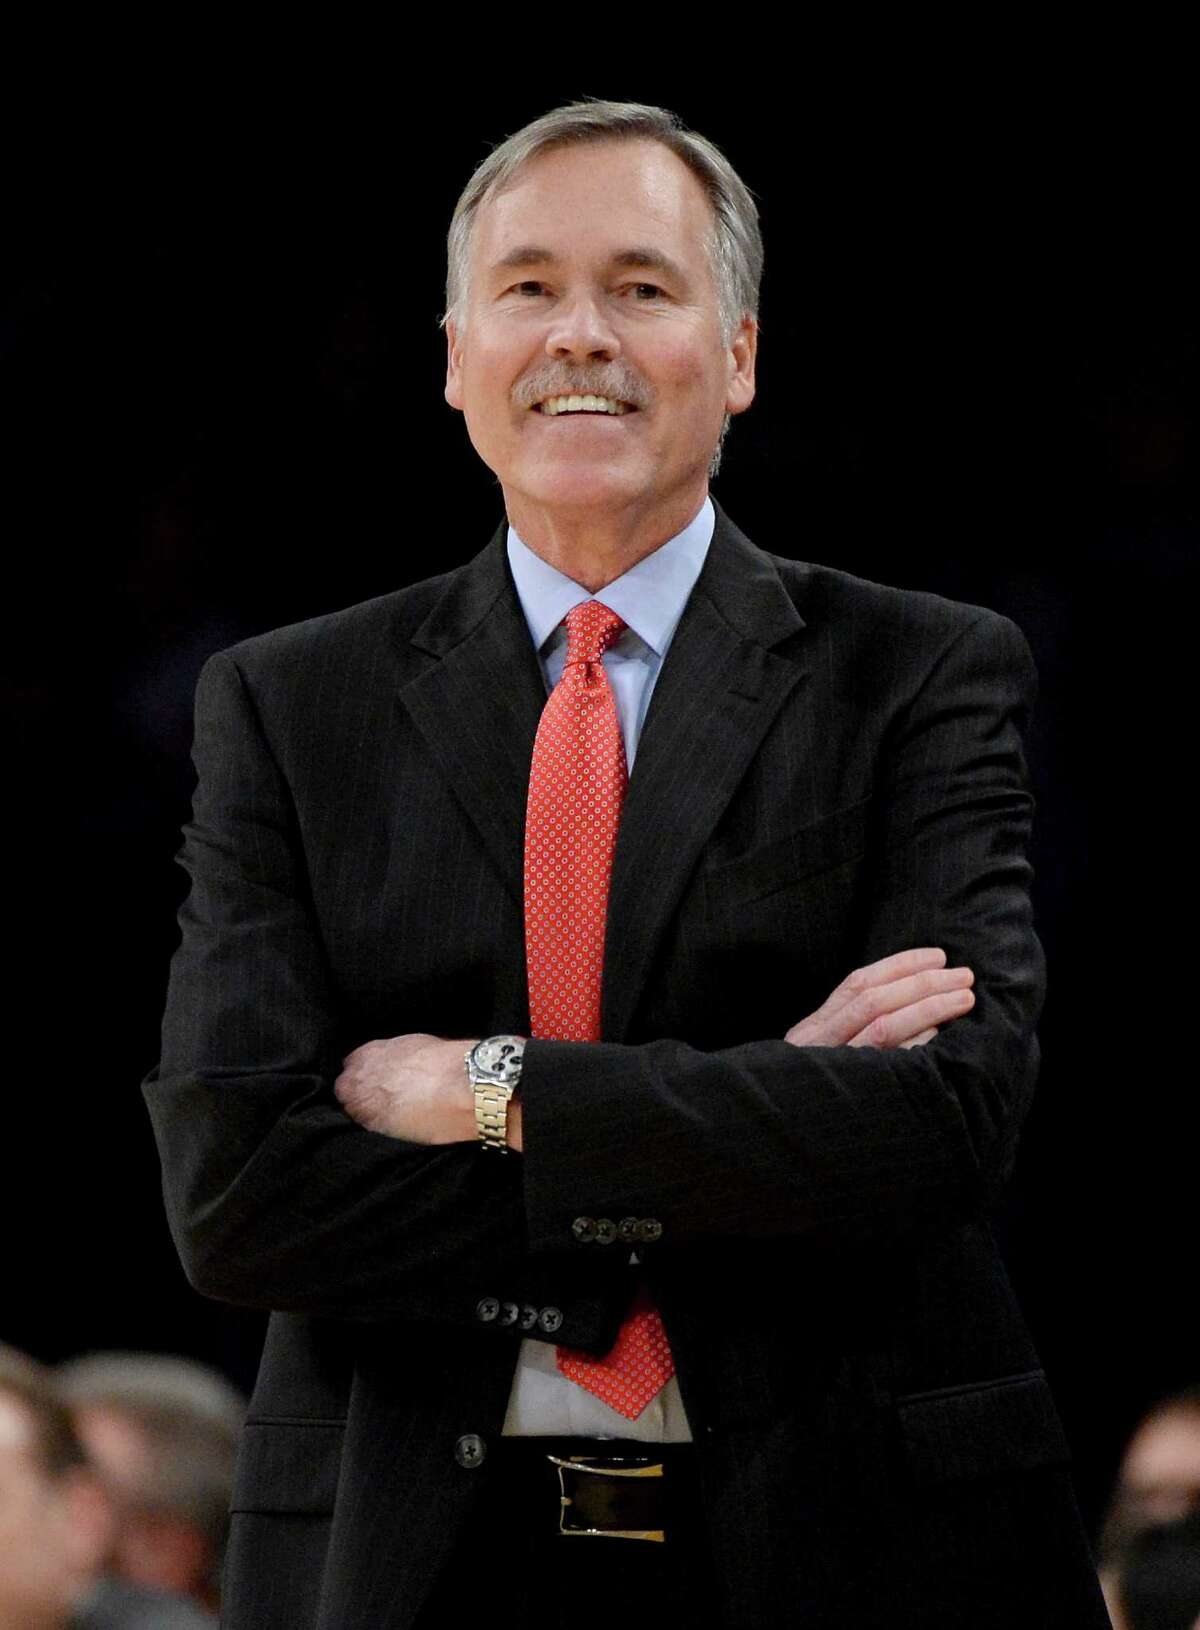 LOS ANGELES, CA - DECEMBER 08: Mike D'Antoni of the Los Angeles Lakers reacts to a call during the game against the Toronto Raptors at Staples Center on December 8, 2013 in Los Angeles, California. NOTE TO USER: User expressly acknowledges and agrees that, by downloading and or using this Photograph, user is consenting to the terms and condition of the Getty Images License Agreement. (Photo by Harry How/Getty Images)